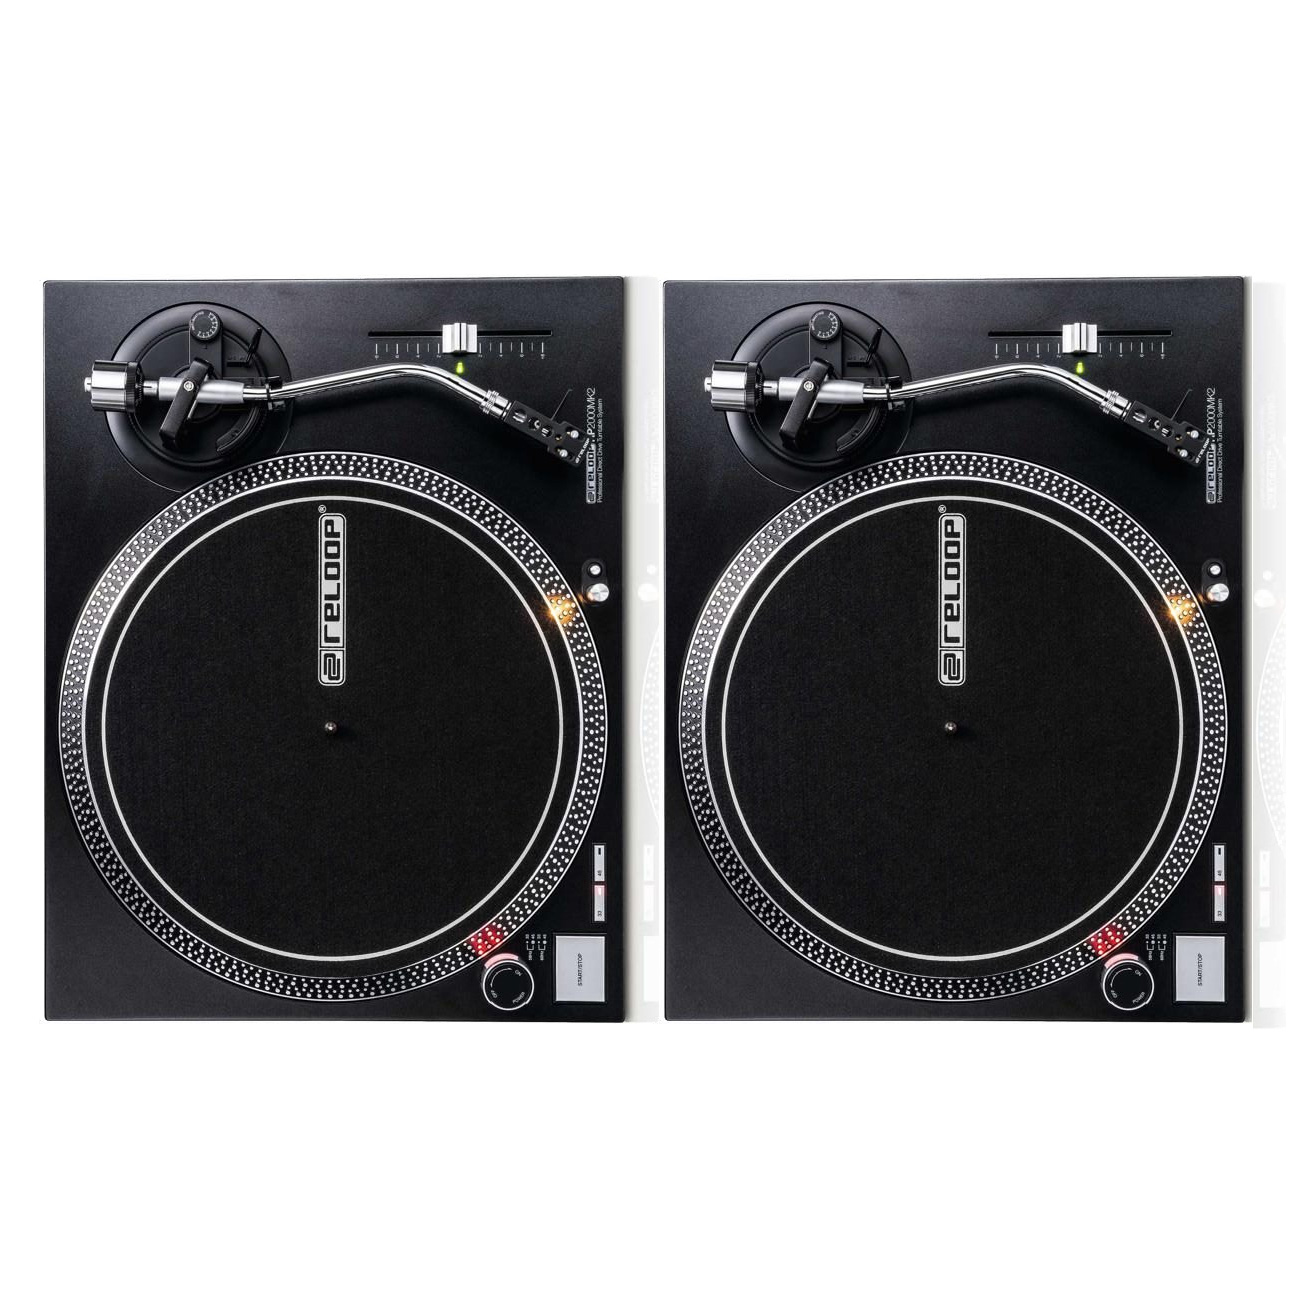 Reloop RP-2000 MK2 USB - Twin Set of Professional Direct-Drive USB Turntable